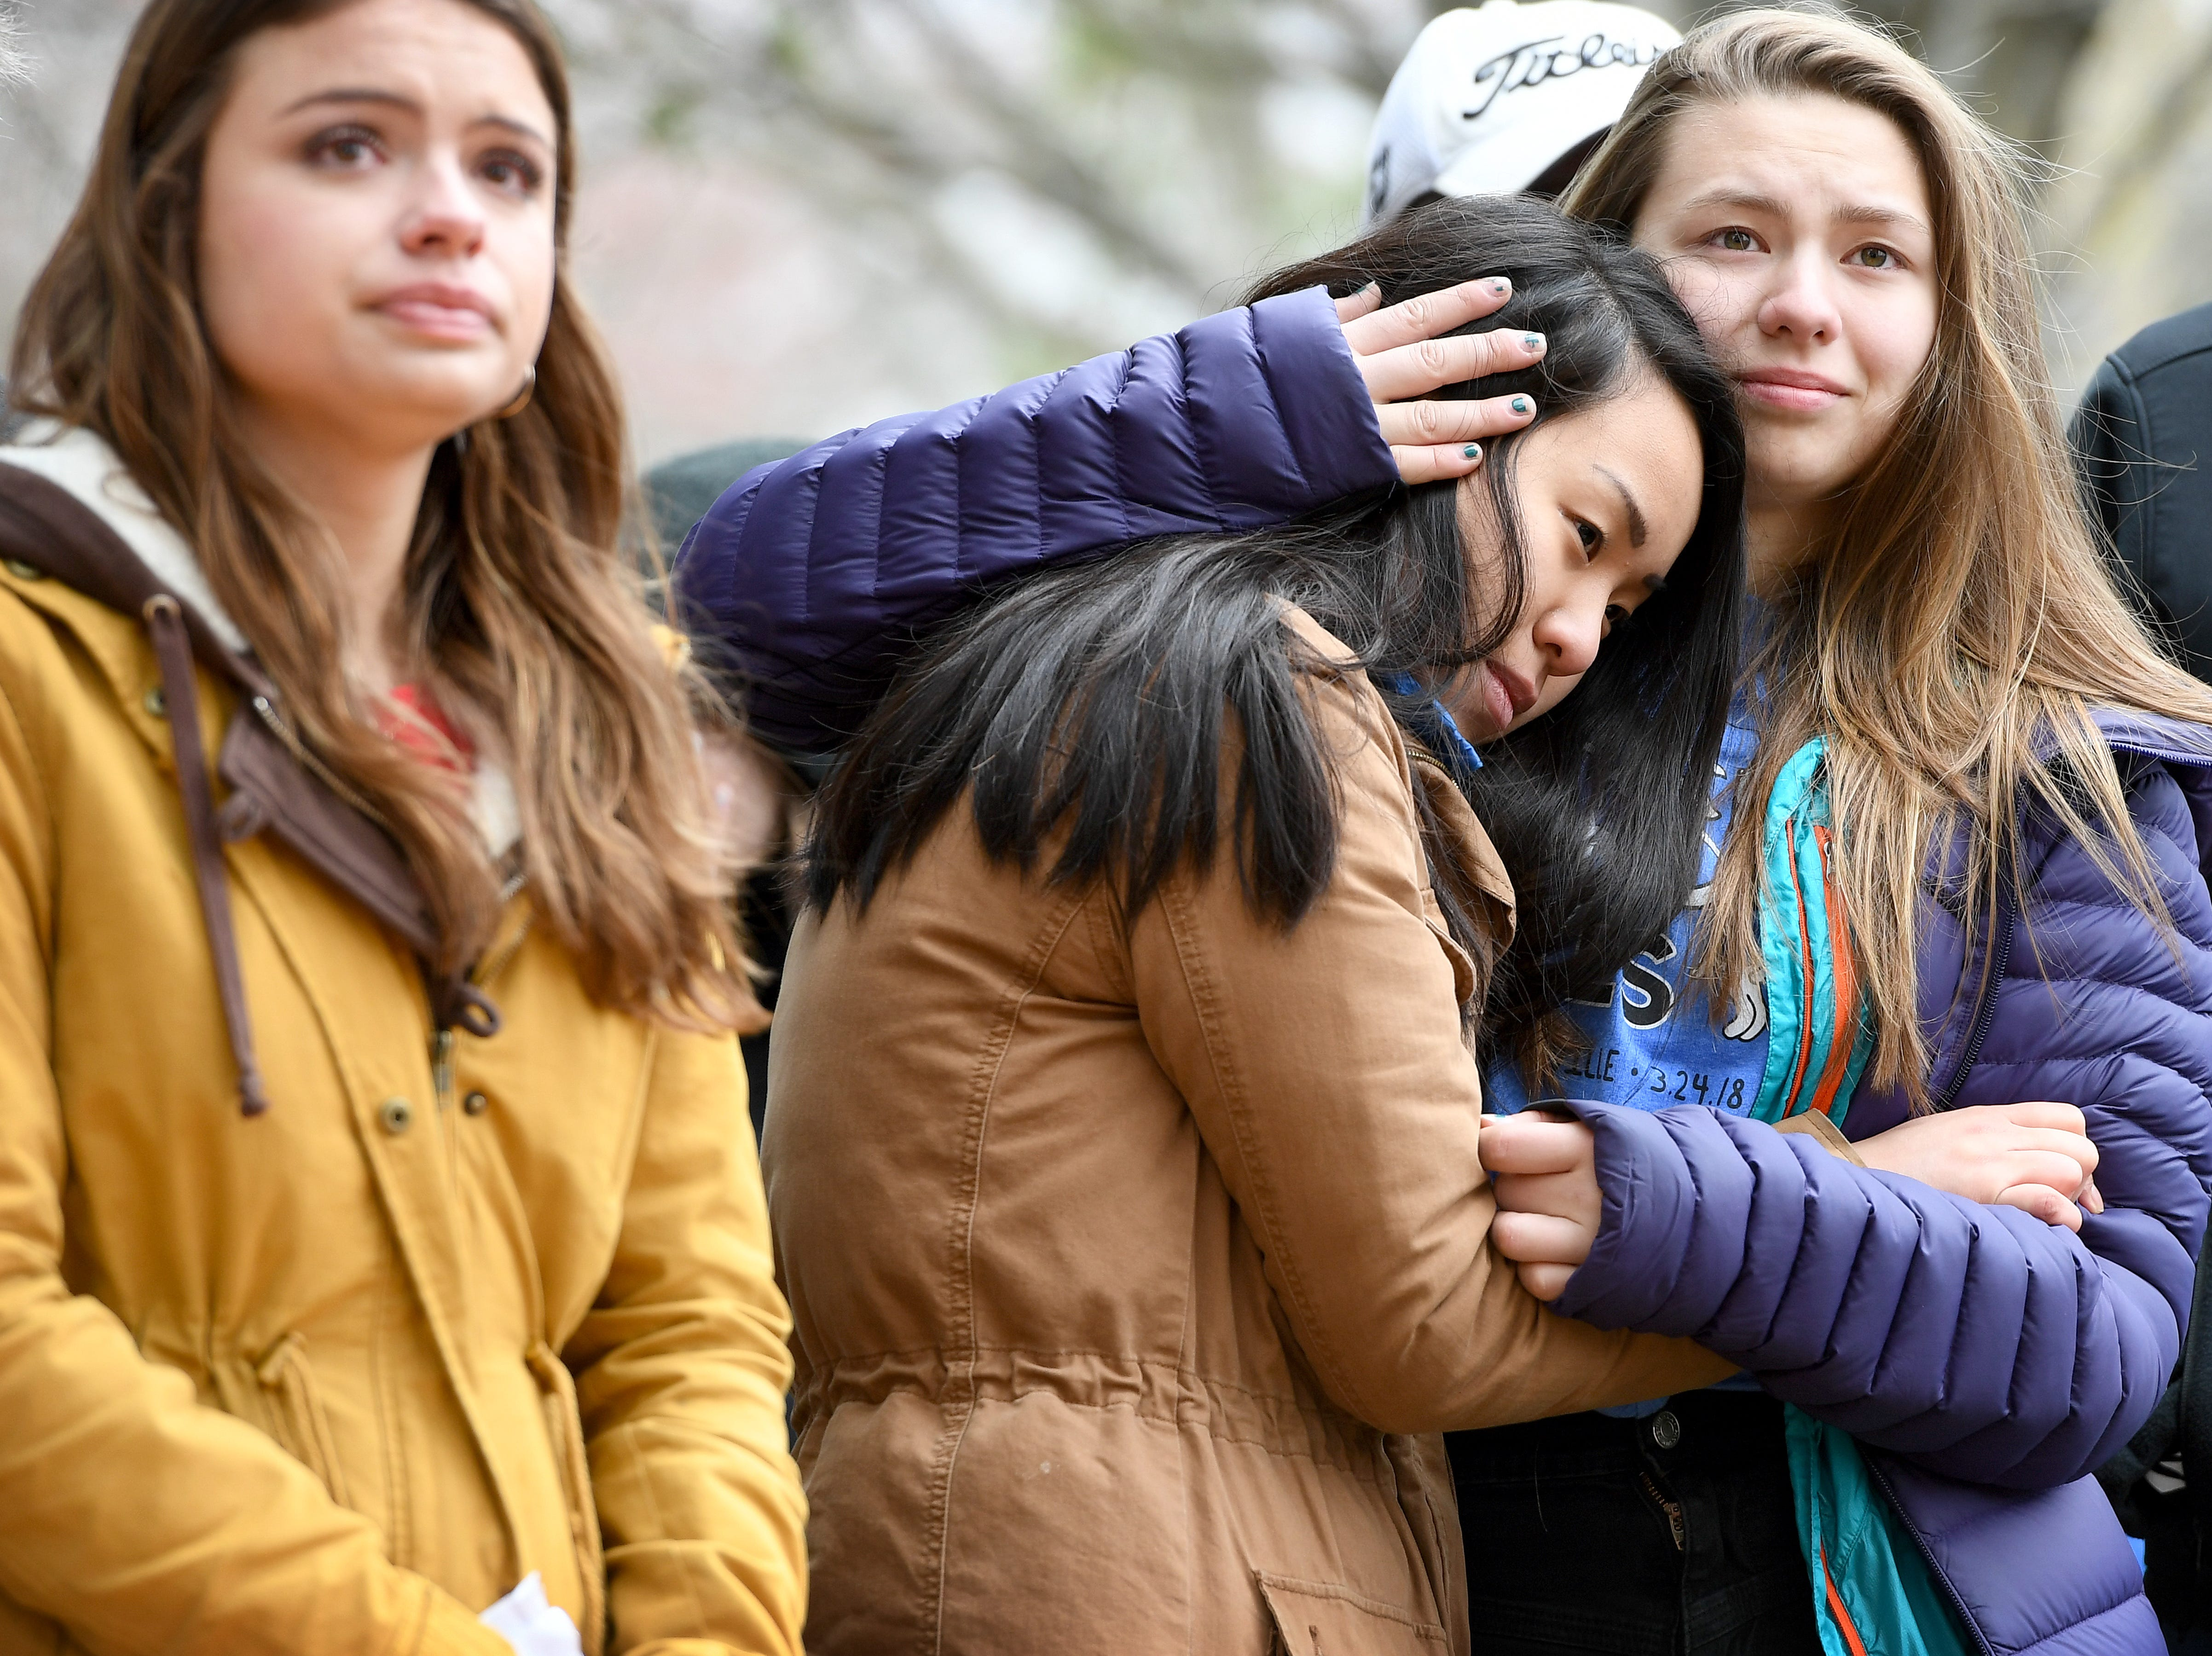 March organizers and Reynolds High School students junior Hannah Kepple, 17, left, junior Audrey Meigs, 16, center, and senior Aryelle Jacobsen, 17, listen as the names of the victims of last month's shooting at Stoneman Douglas High School in Parkland Florida are recited at Martin Luther King, Jr. Park during the Asheville March for Our Lives on Saturday, March 24, 2018.